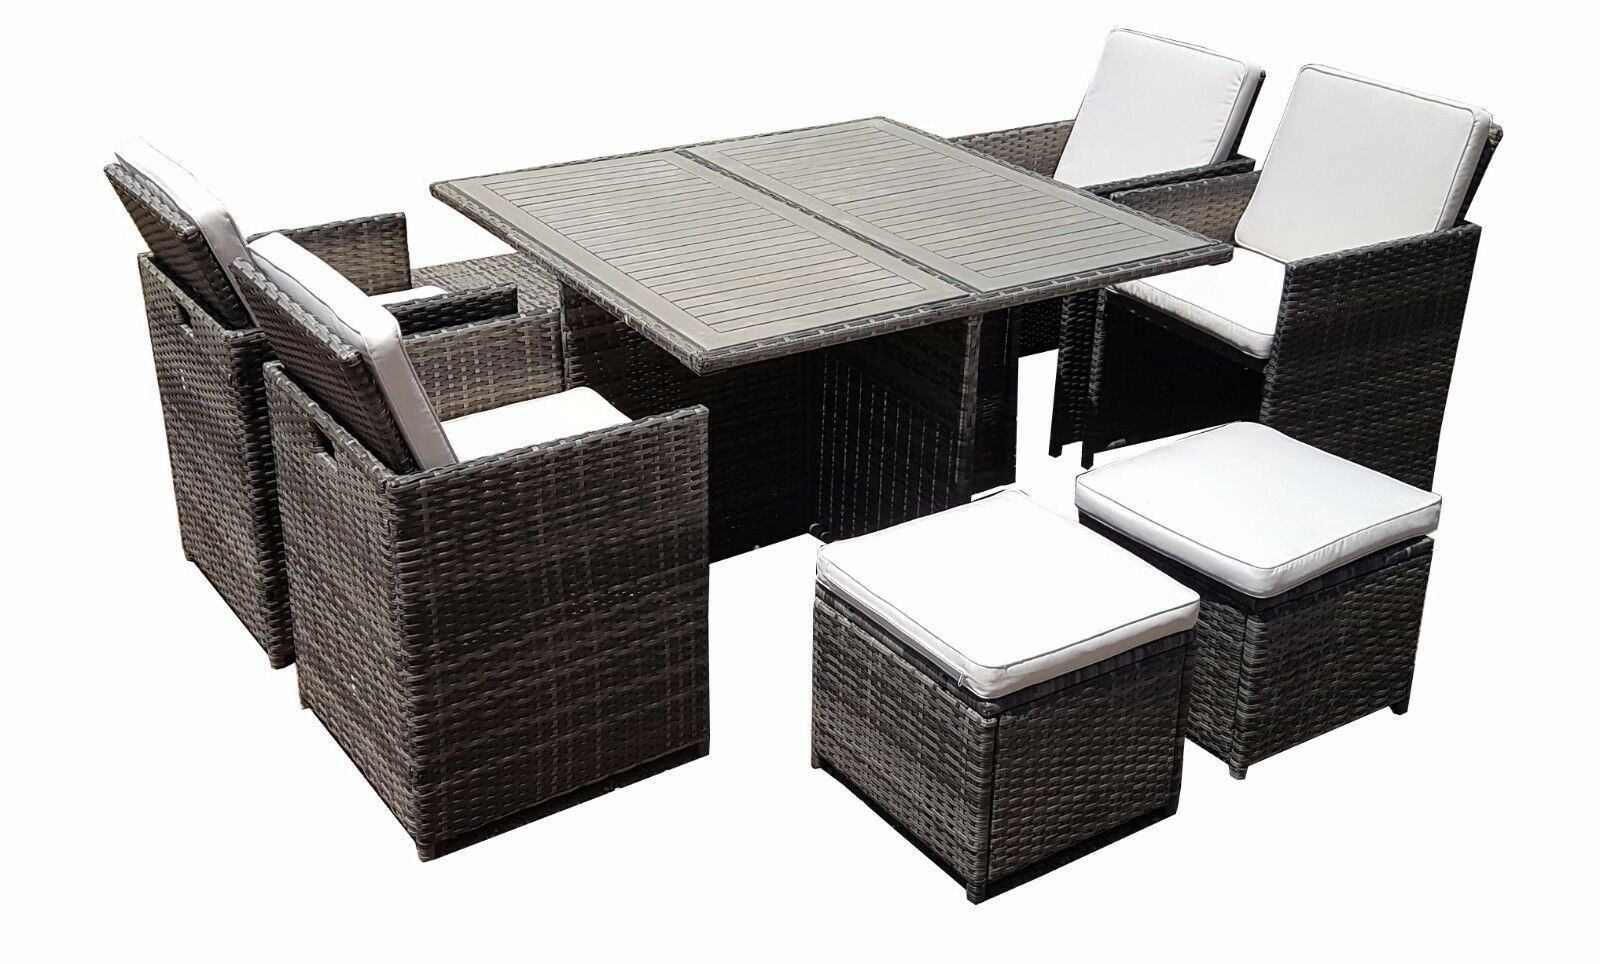 Patio Furniture Table And Chairs Rattan Wicker Conservatory Outdoor Garden Furniture Patio